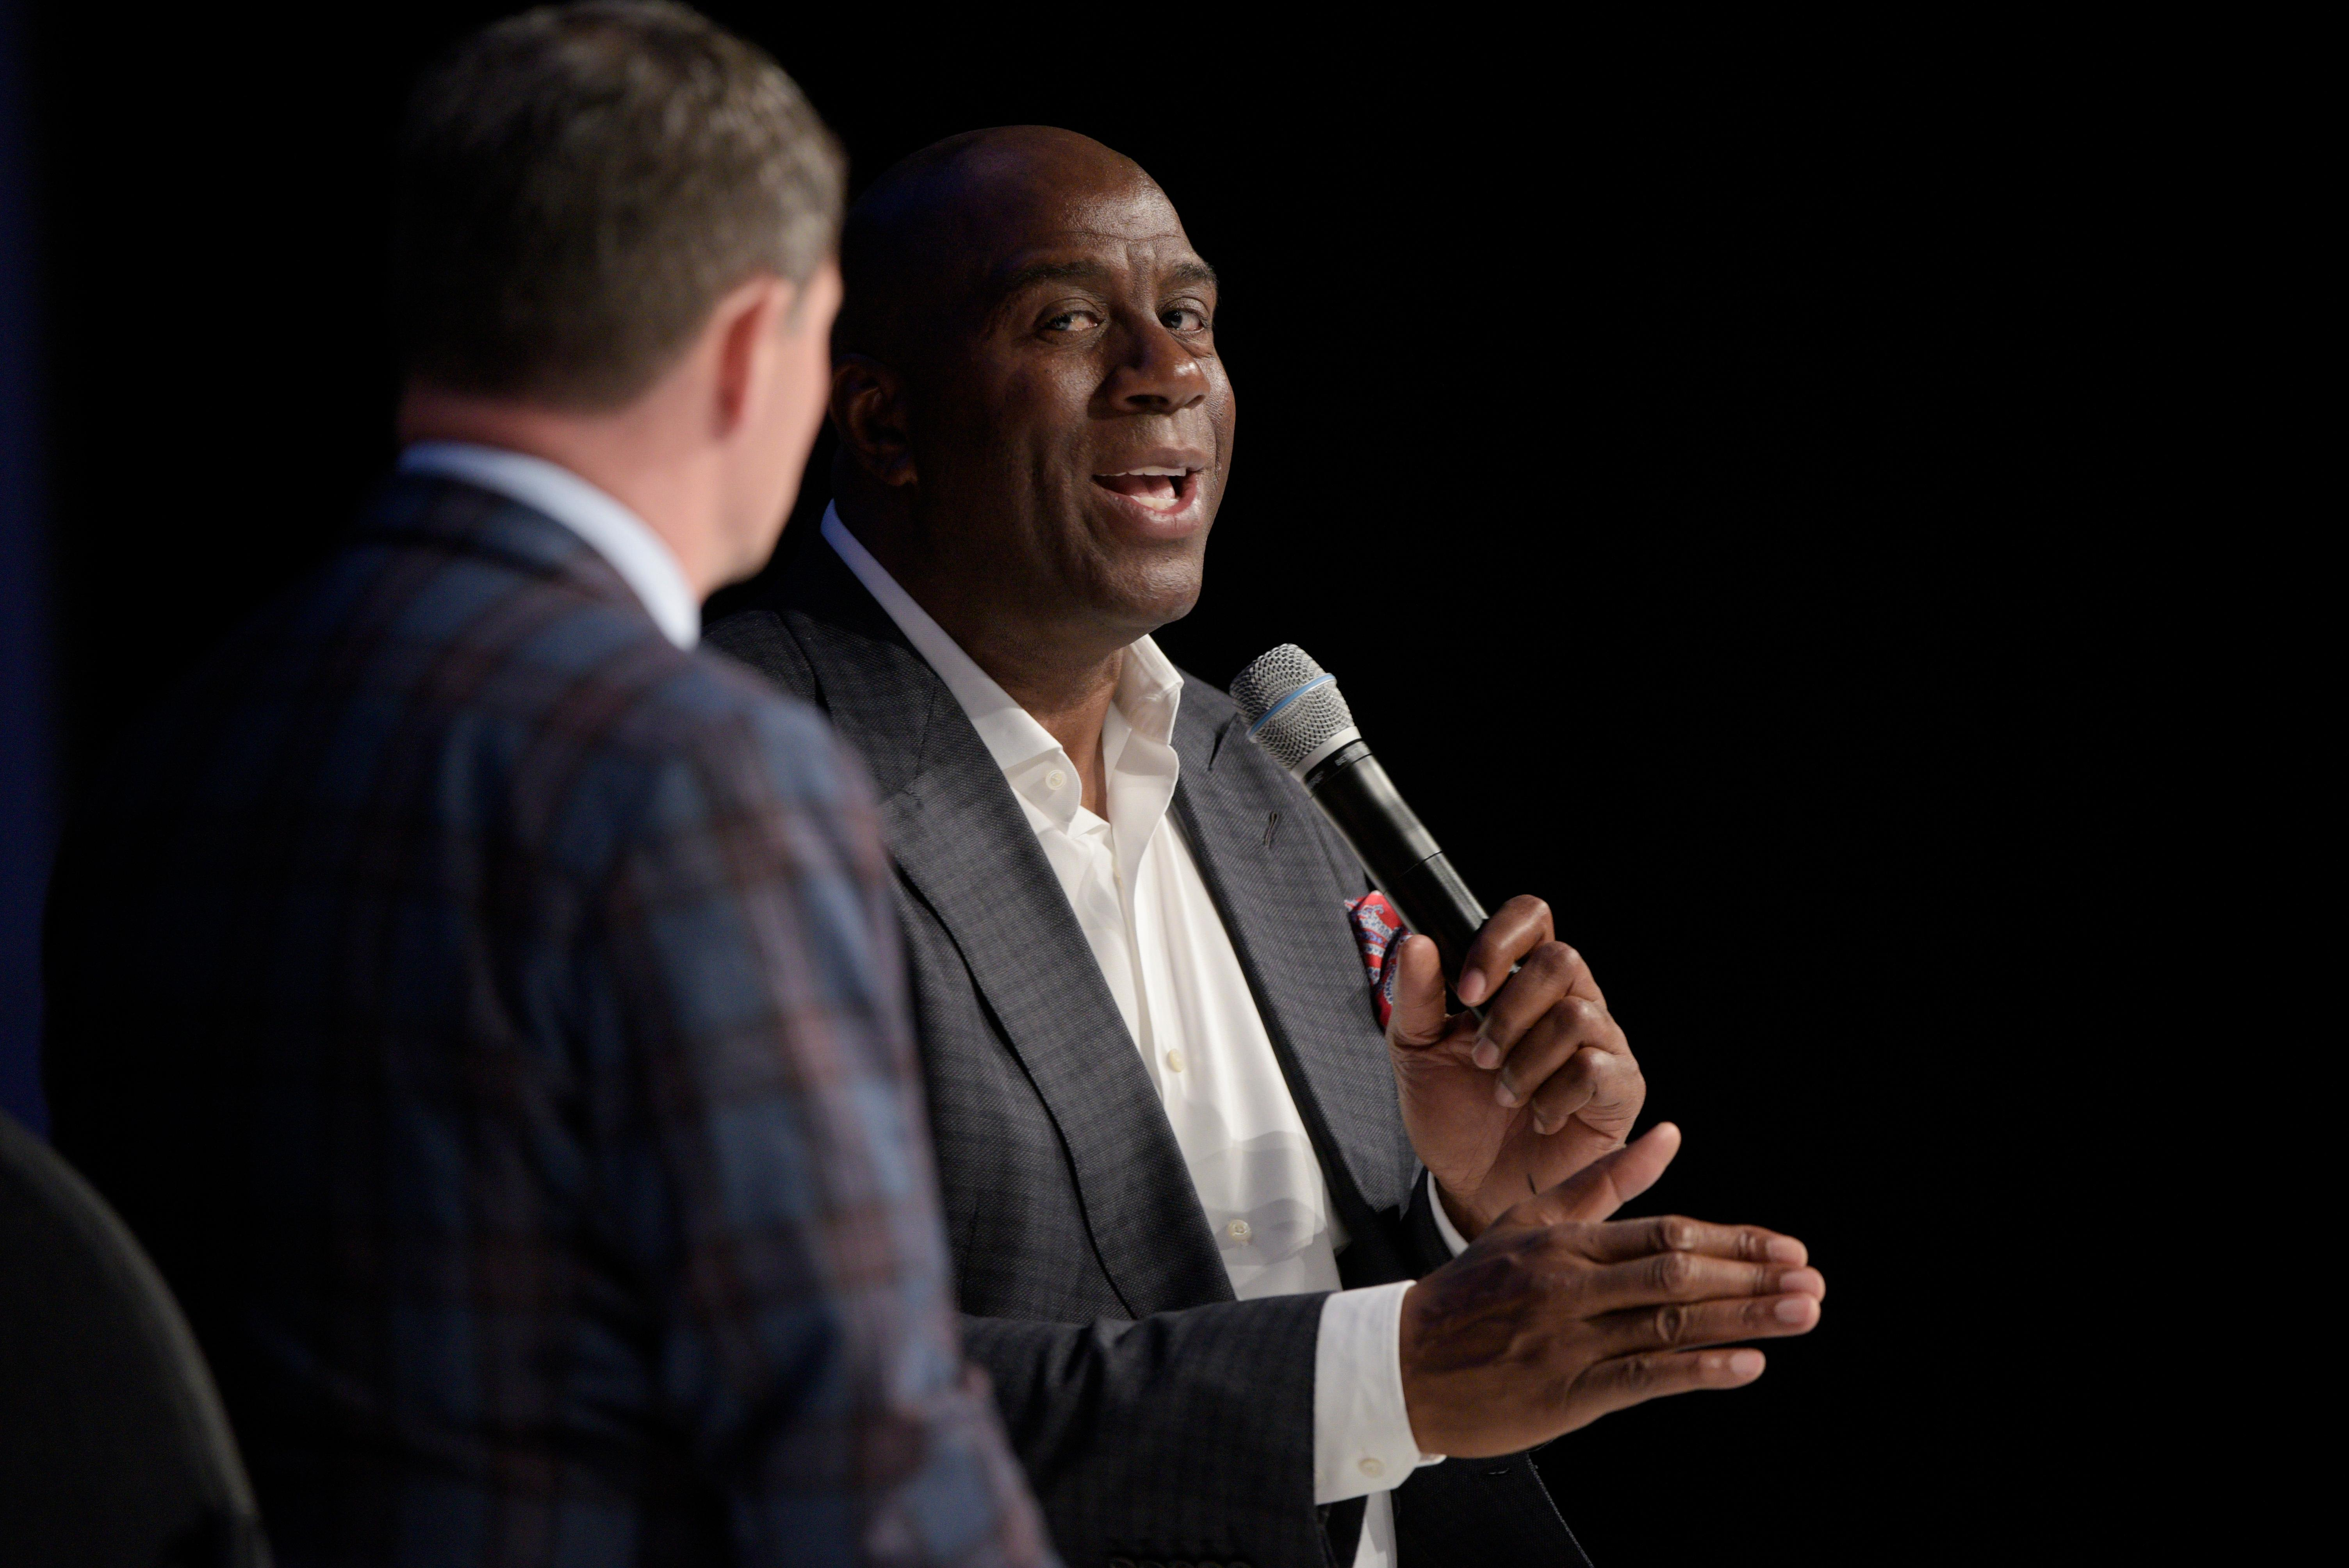 NBA legend and two-time Hall of Famer Earvin Magic Johnson delivers a keynote address during the Global Gaming Expo Thursday, October 5, 2017, at the Sands Expo and Convention Center. CREDIT: Sam Morris/Las Vegas News Bureau